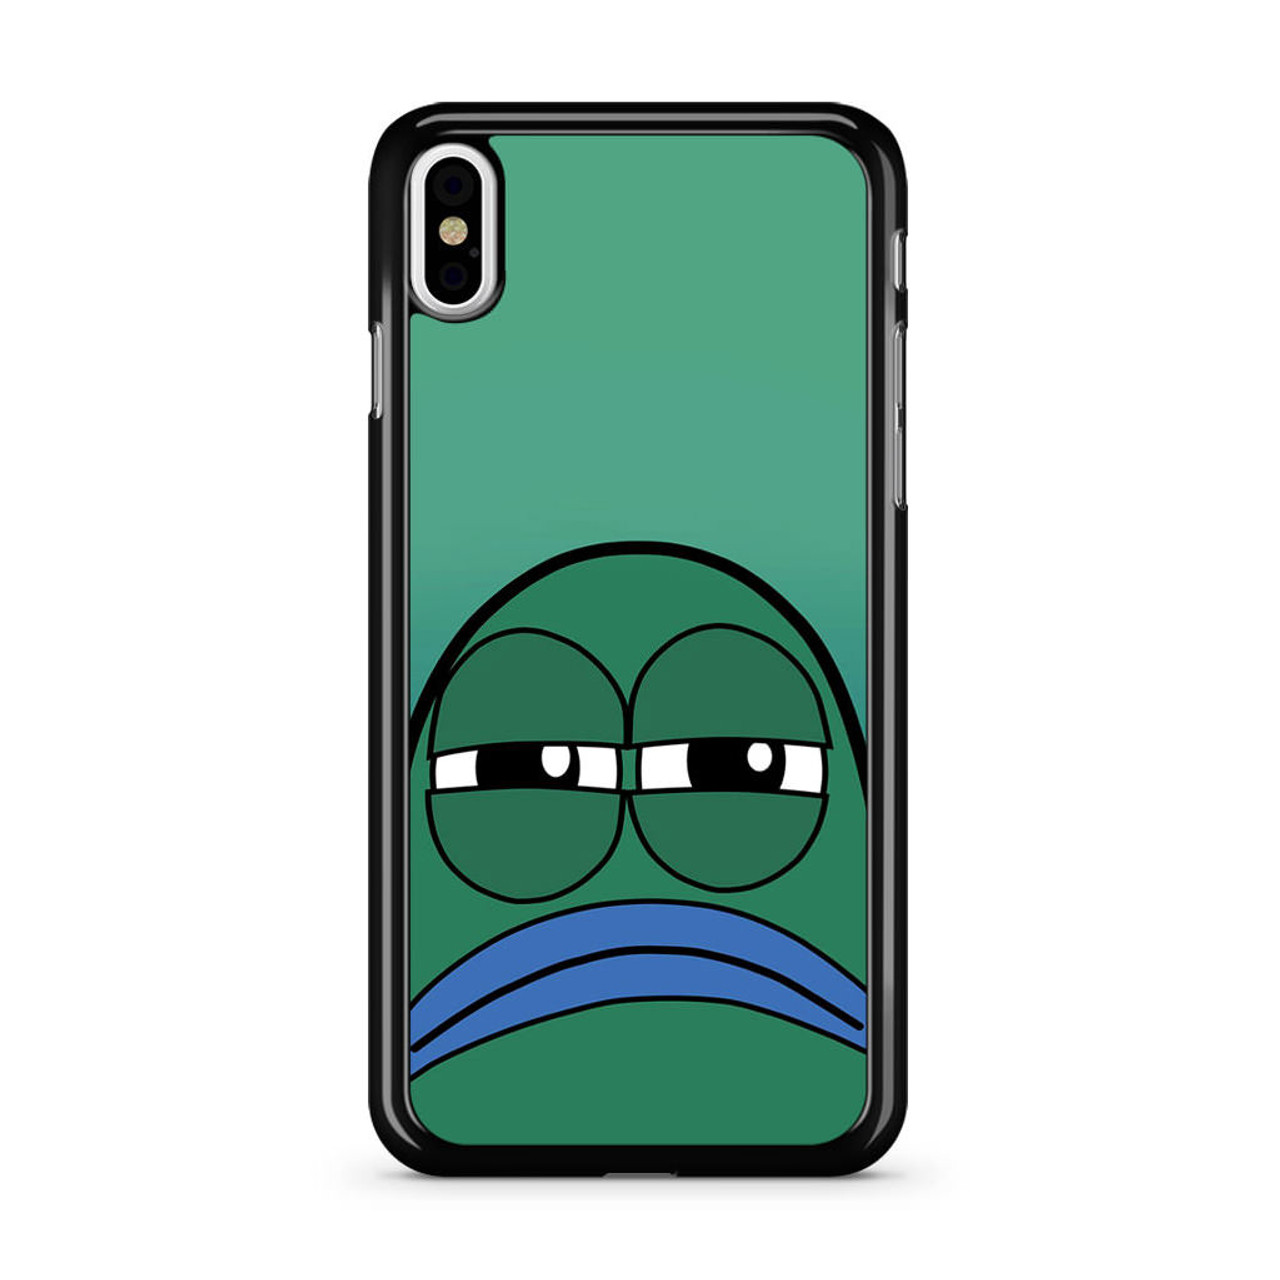 iphone xs max case turquoise